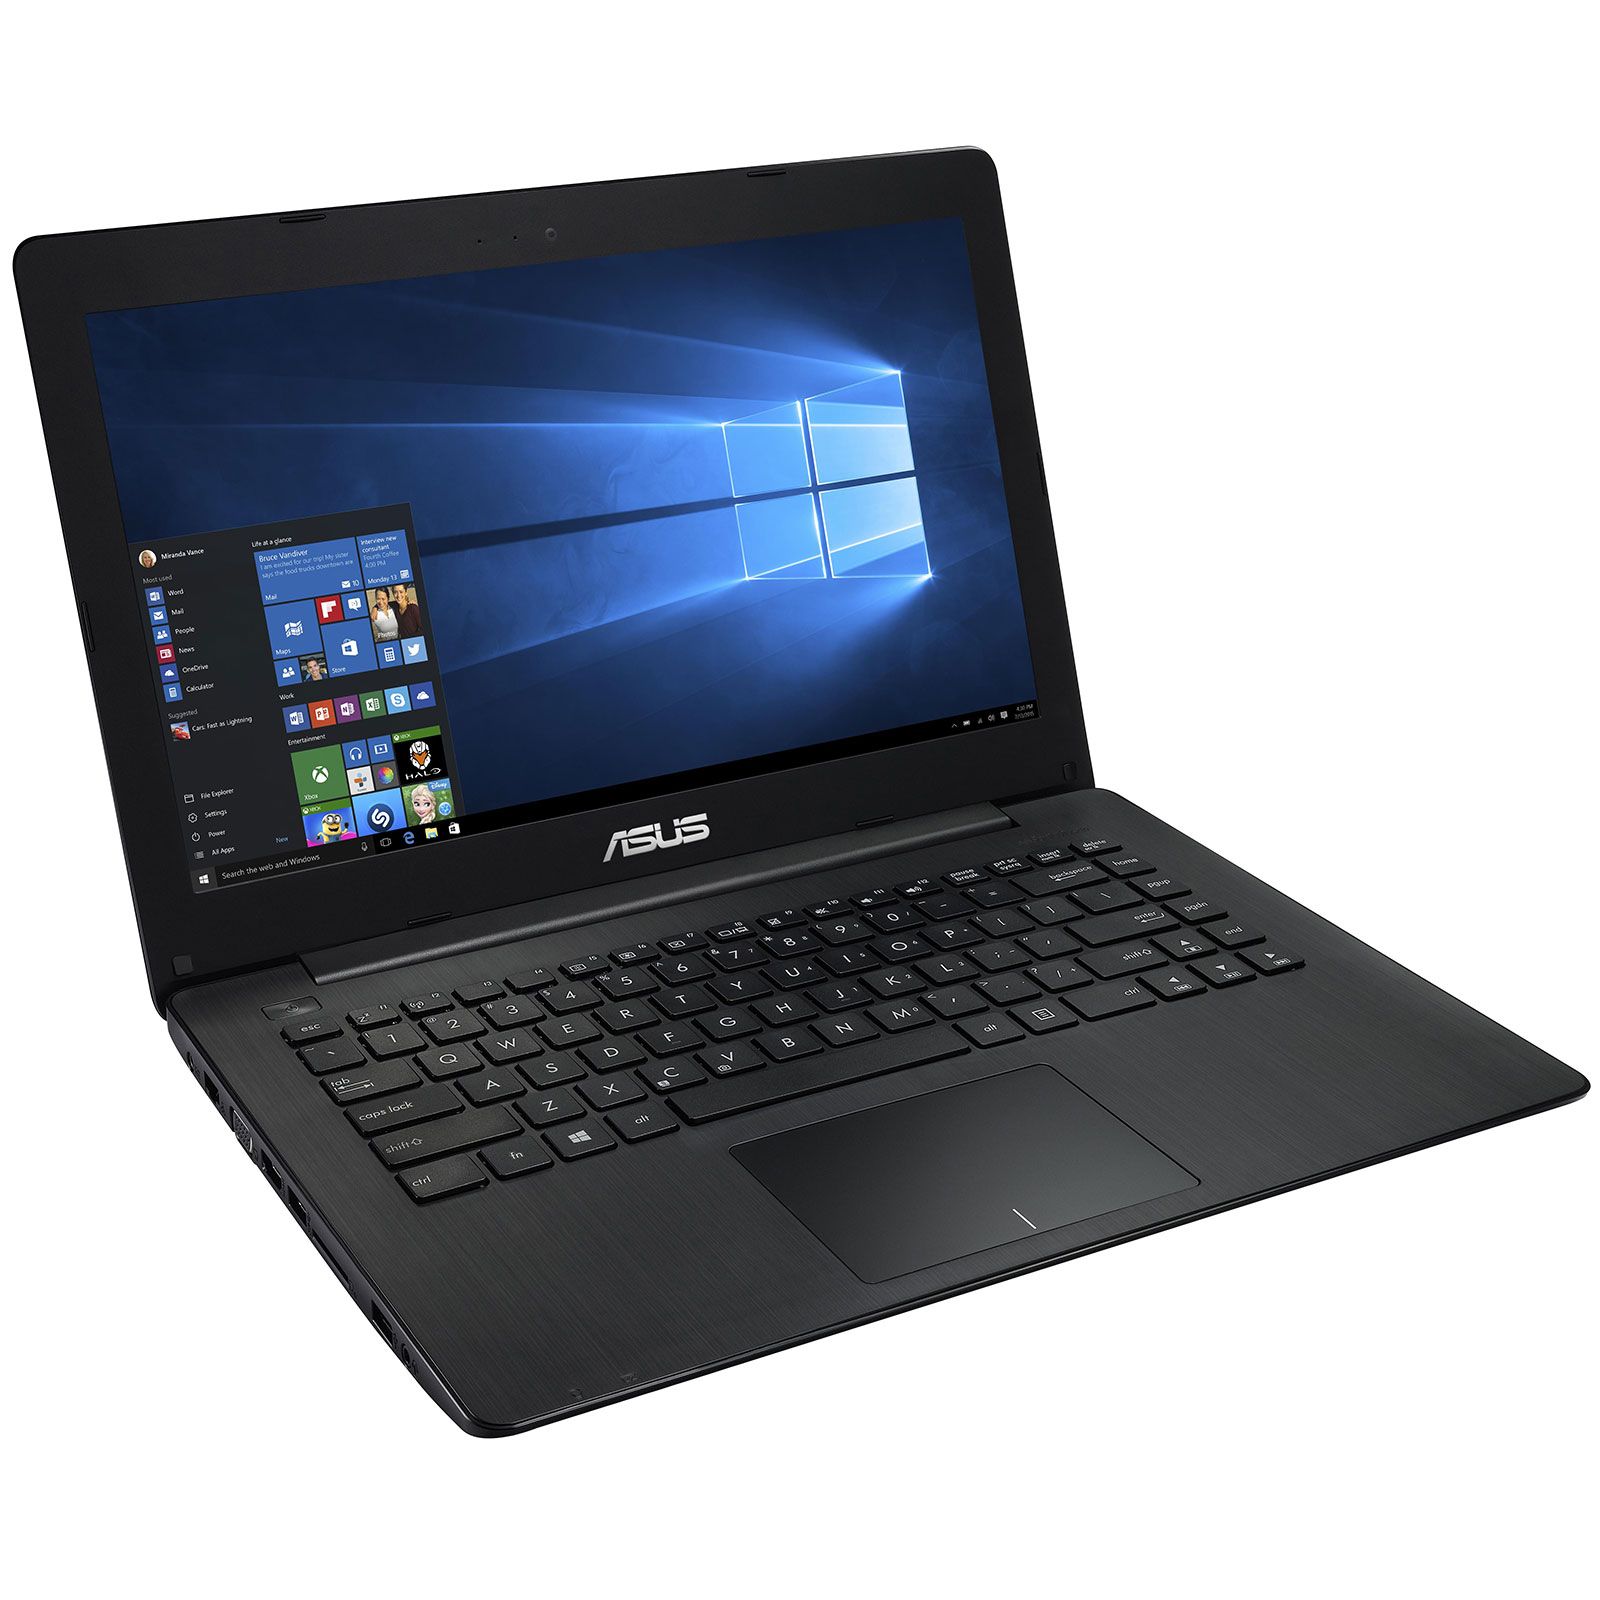 asus x453sa wx080t noir pc portable asus sur. Black Bedroom Furniture Sets. Home Design Ideas